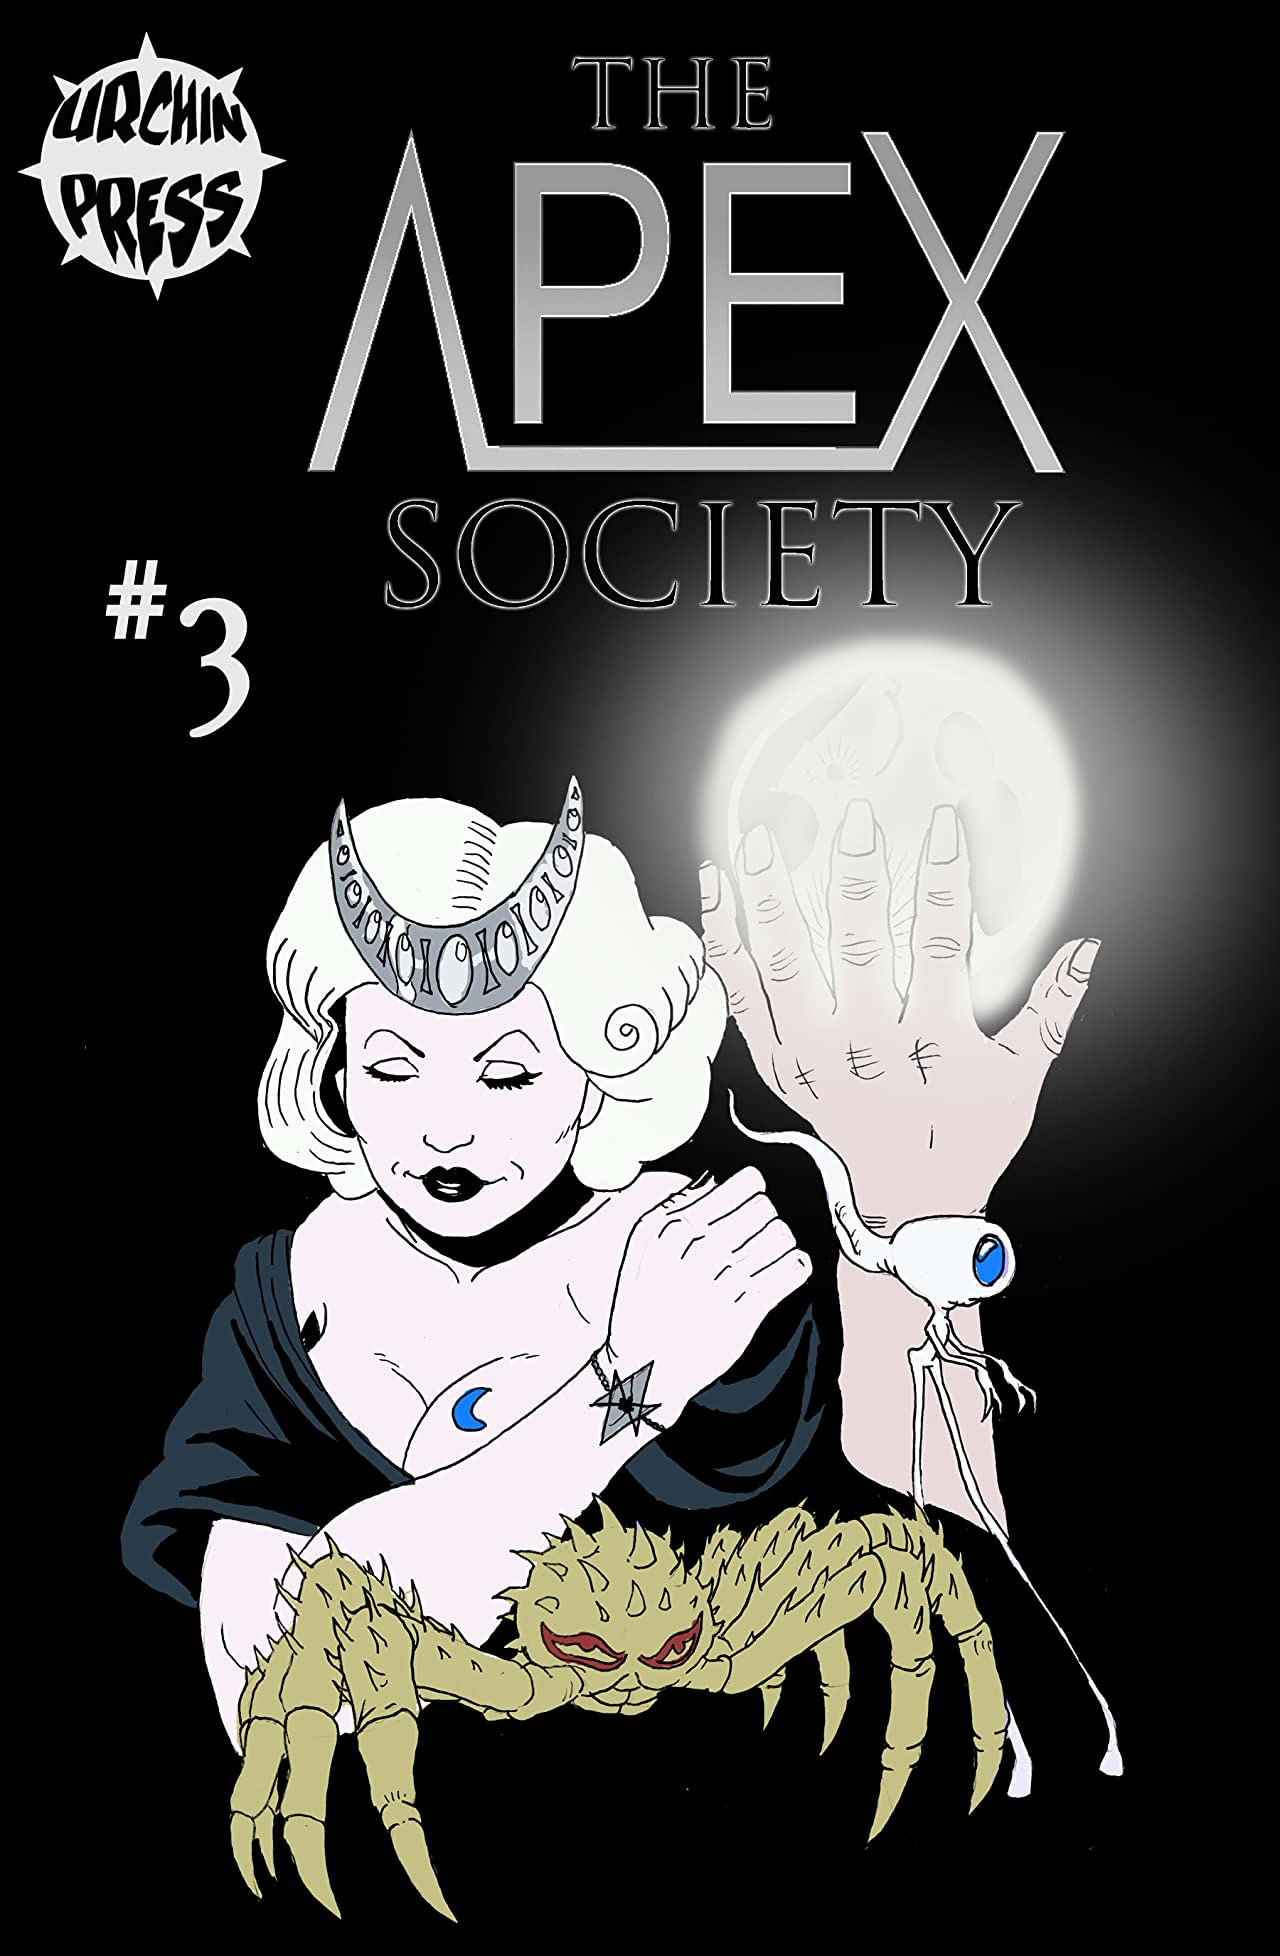 The Apex Society #3